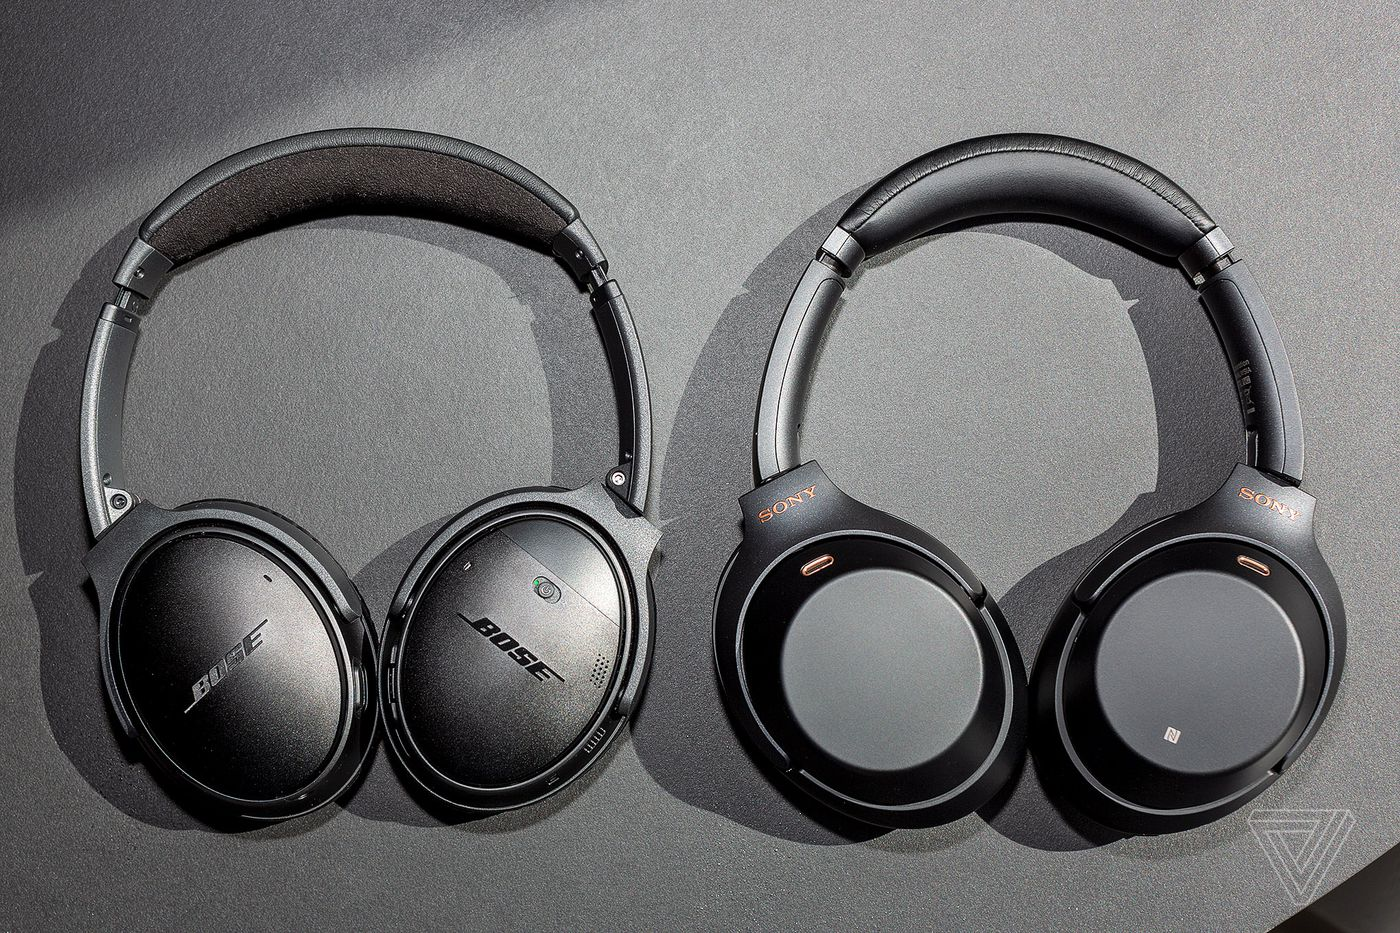 Sony 1000X M3 review: supreme noise canceling headphones - The Verge